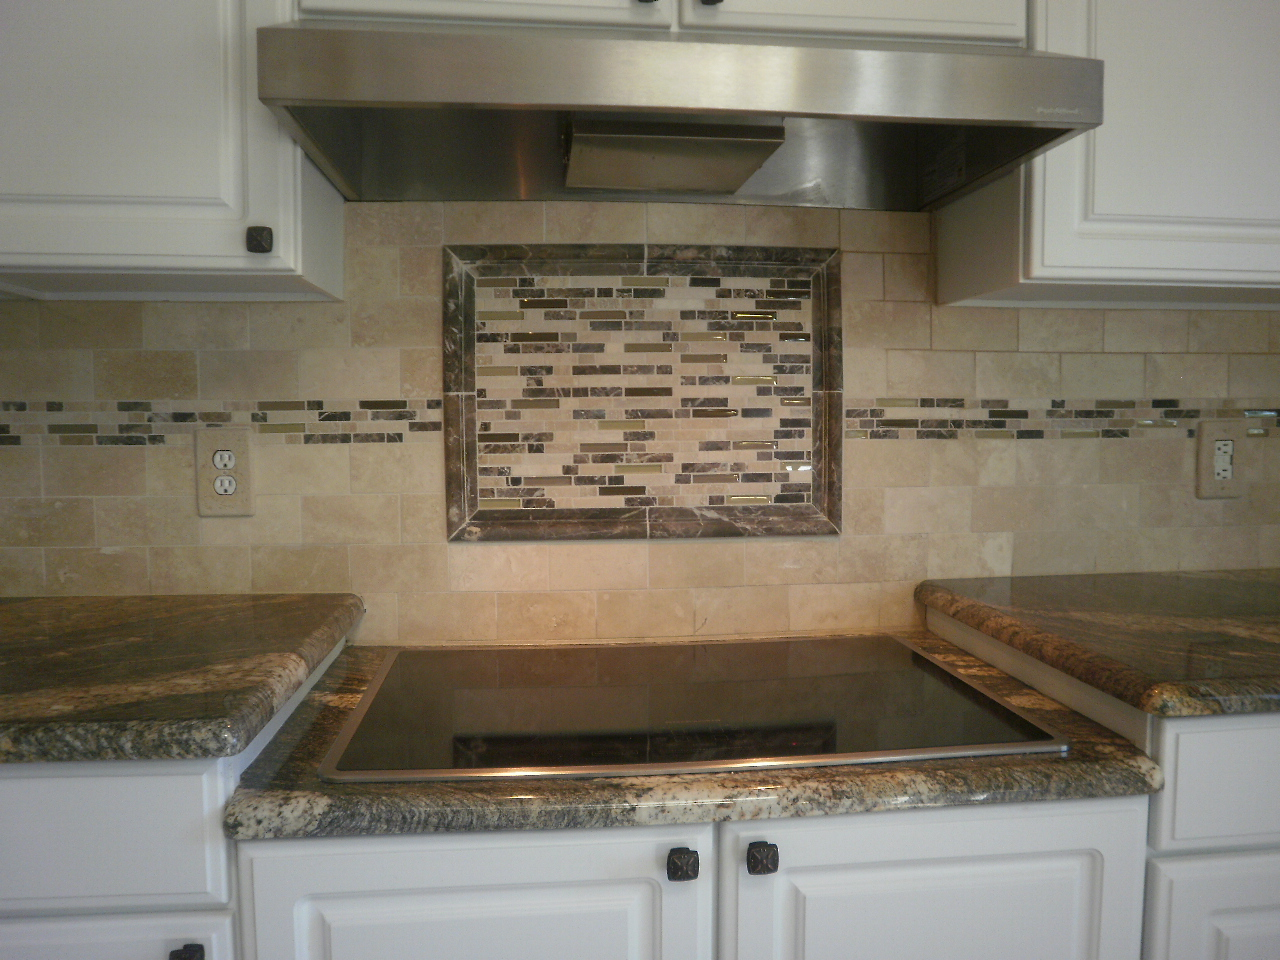 Kitchen backsplash ideas glass tile afreakatheart Backsplash tile for kitchen